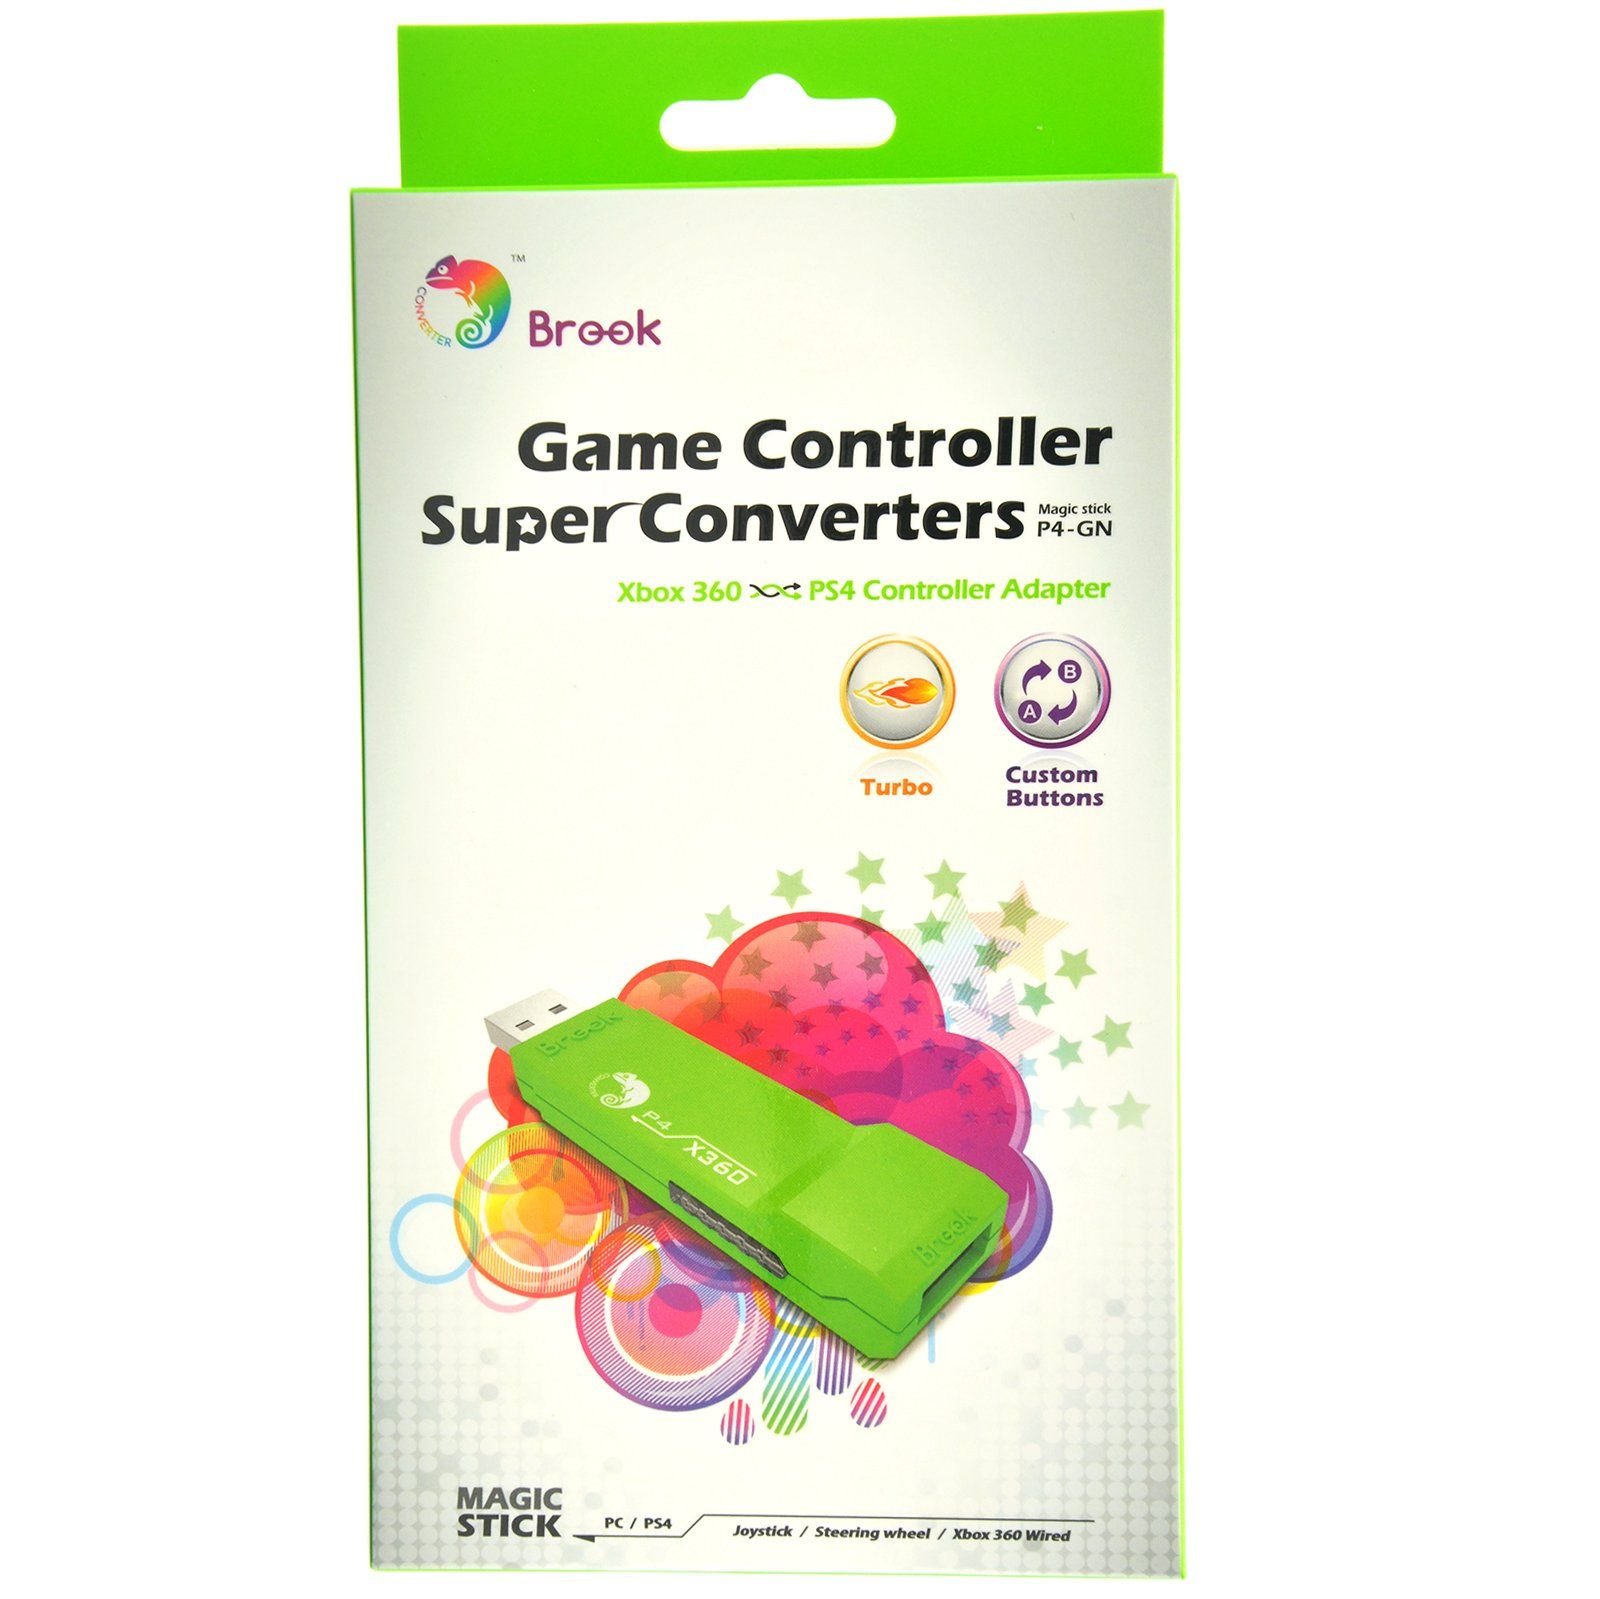 Brook super converter xbox 360 to ps4 learn more by